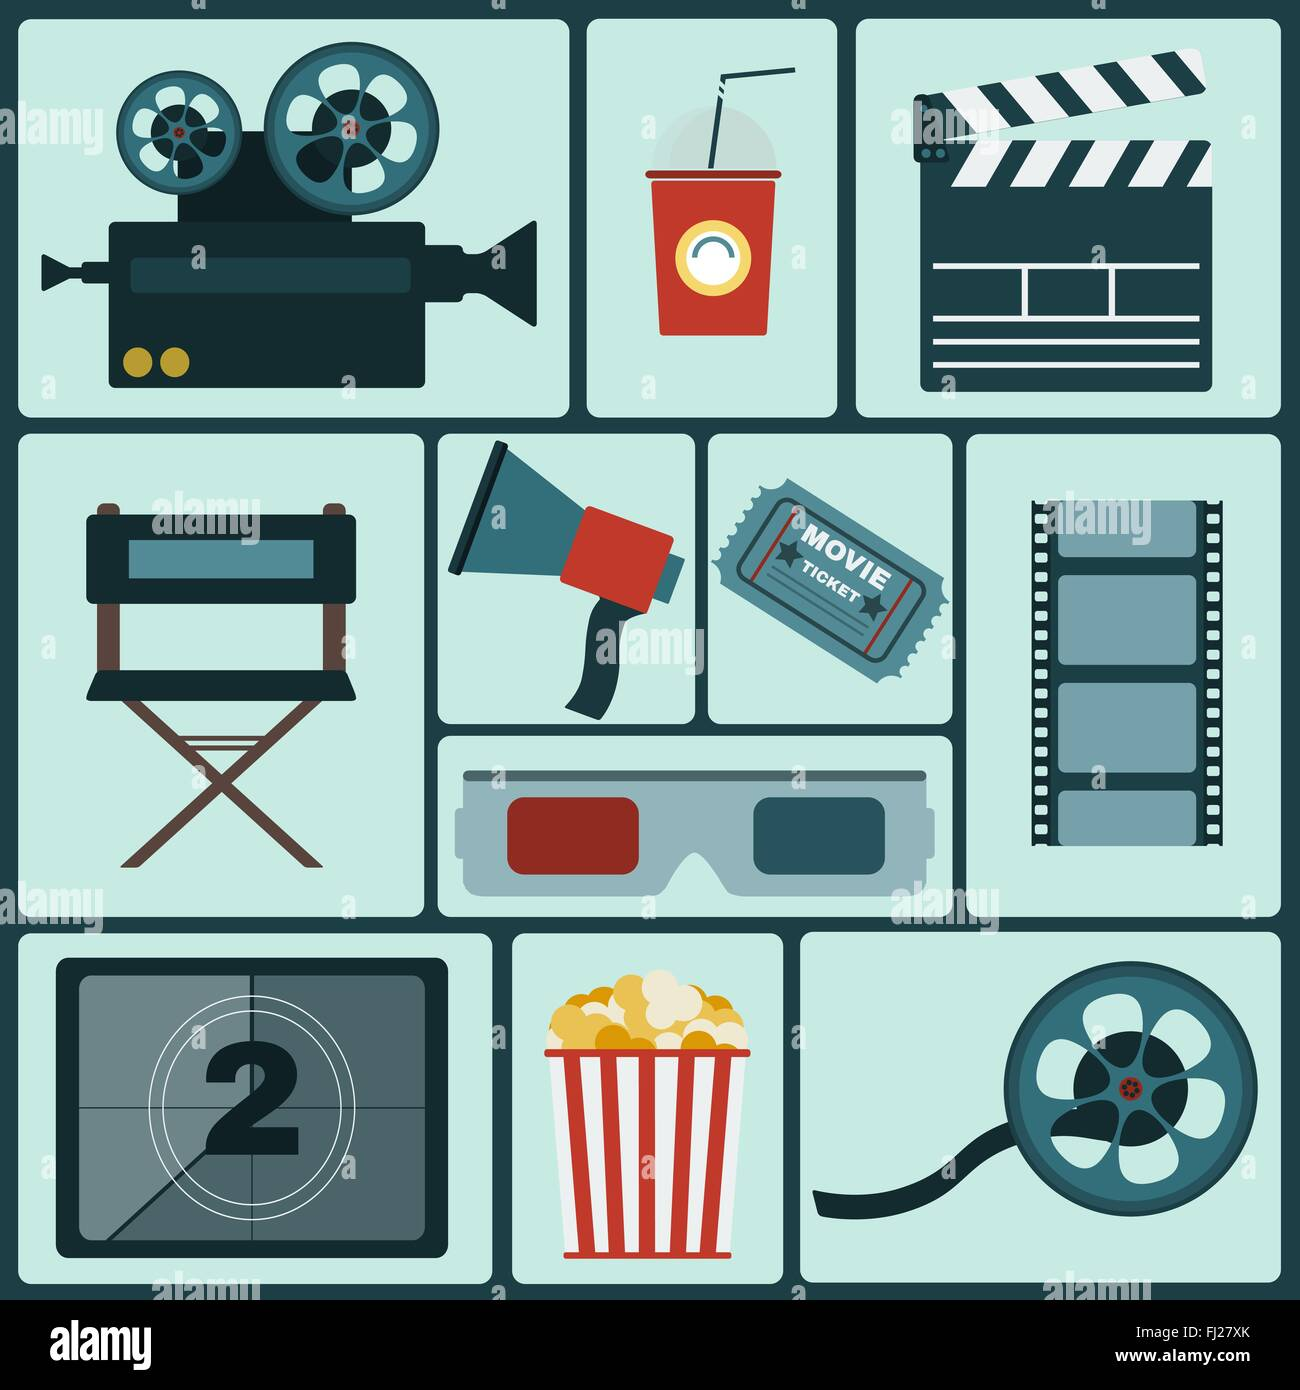 Cinema icon set  Making Movie  Camera, Movie Ticket, Clapper